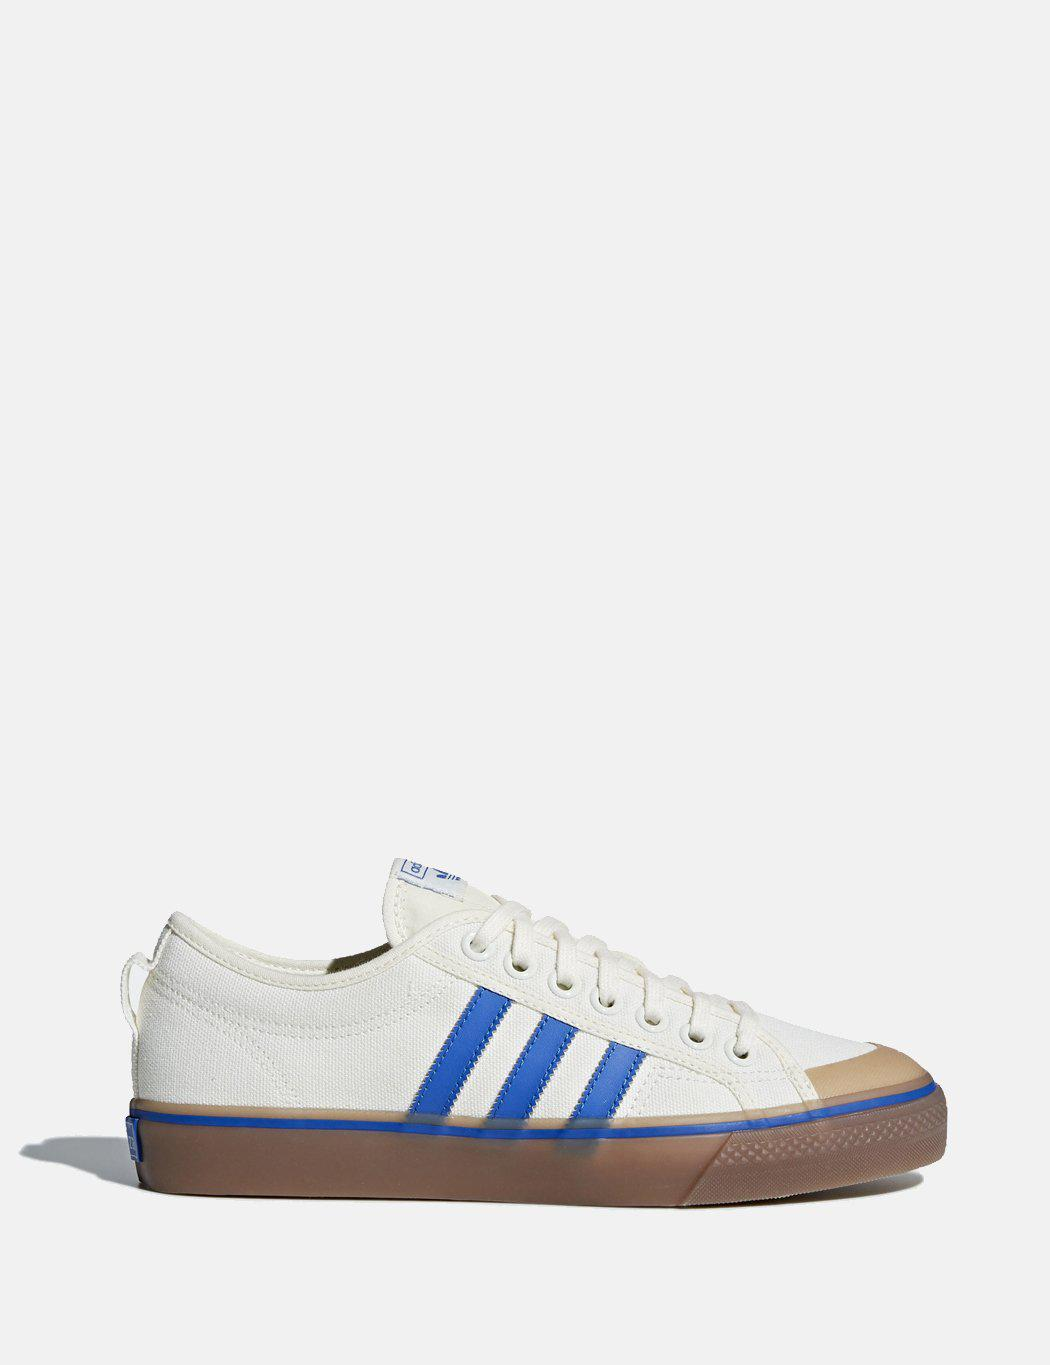 adidas canvas trainers